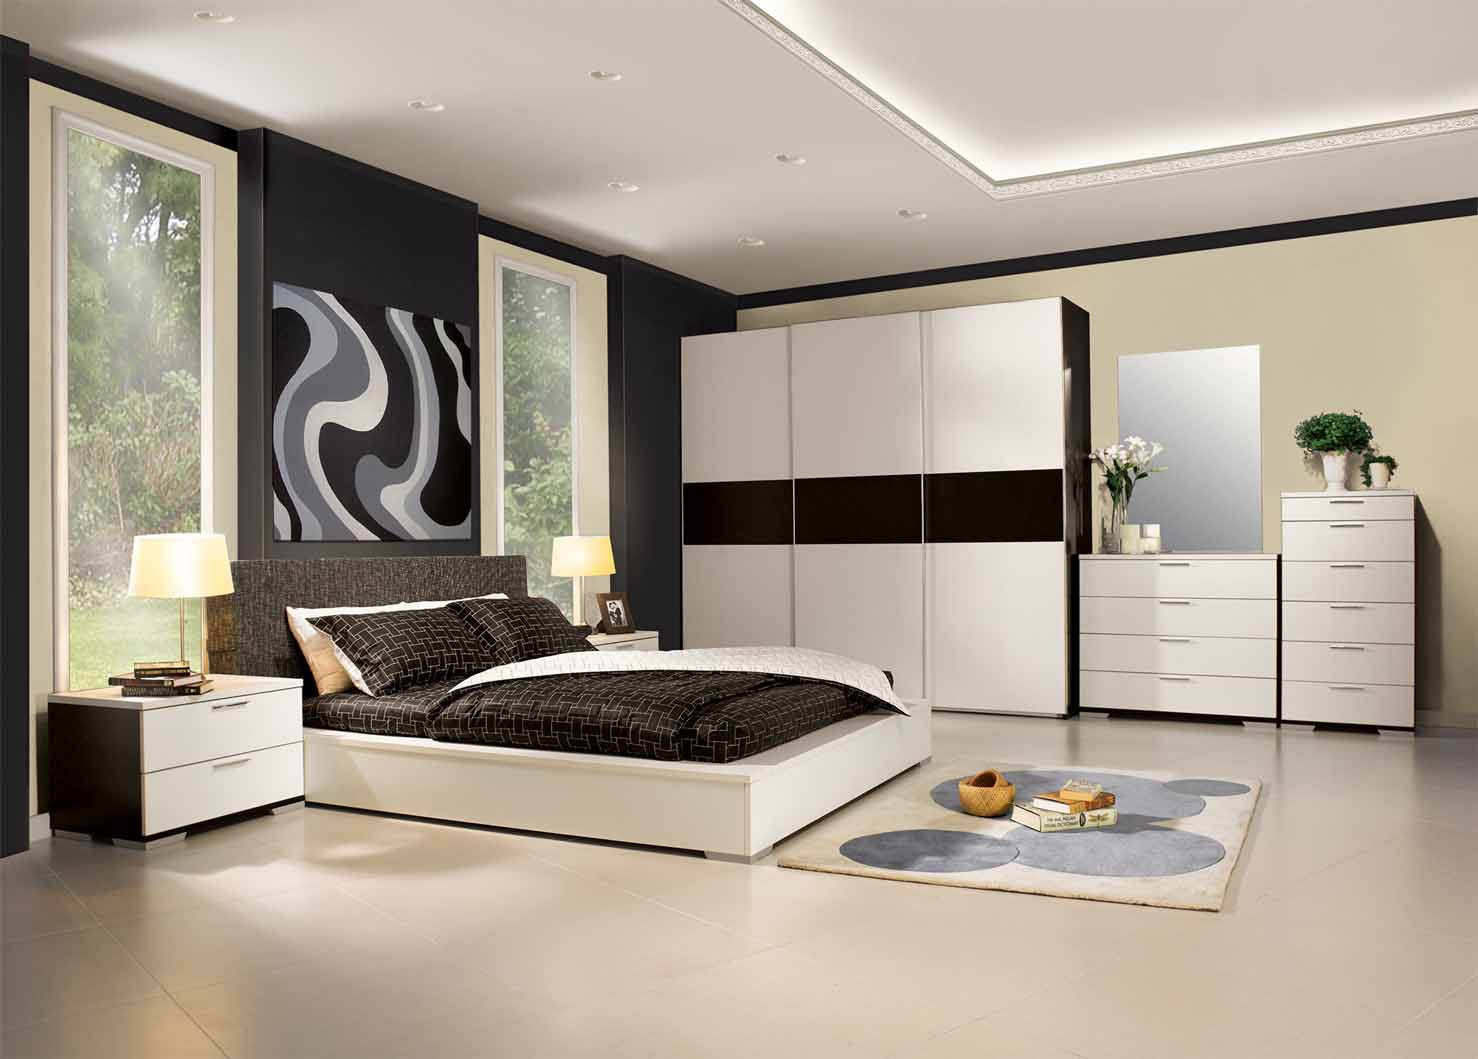 Bed Room wonderful modern asian bedroom design ideas - architecture world